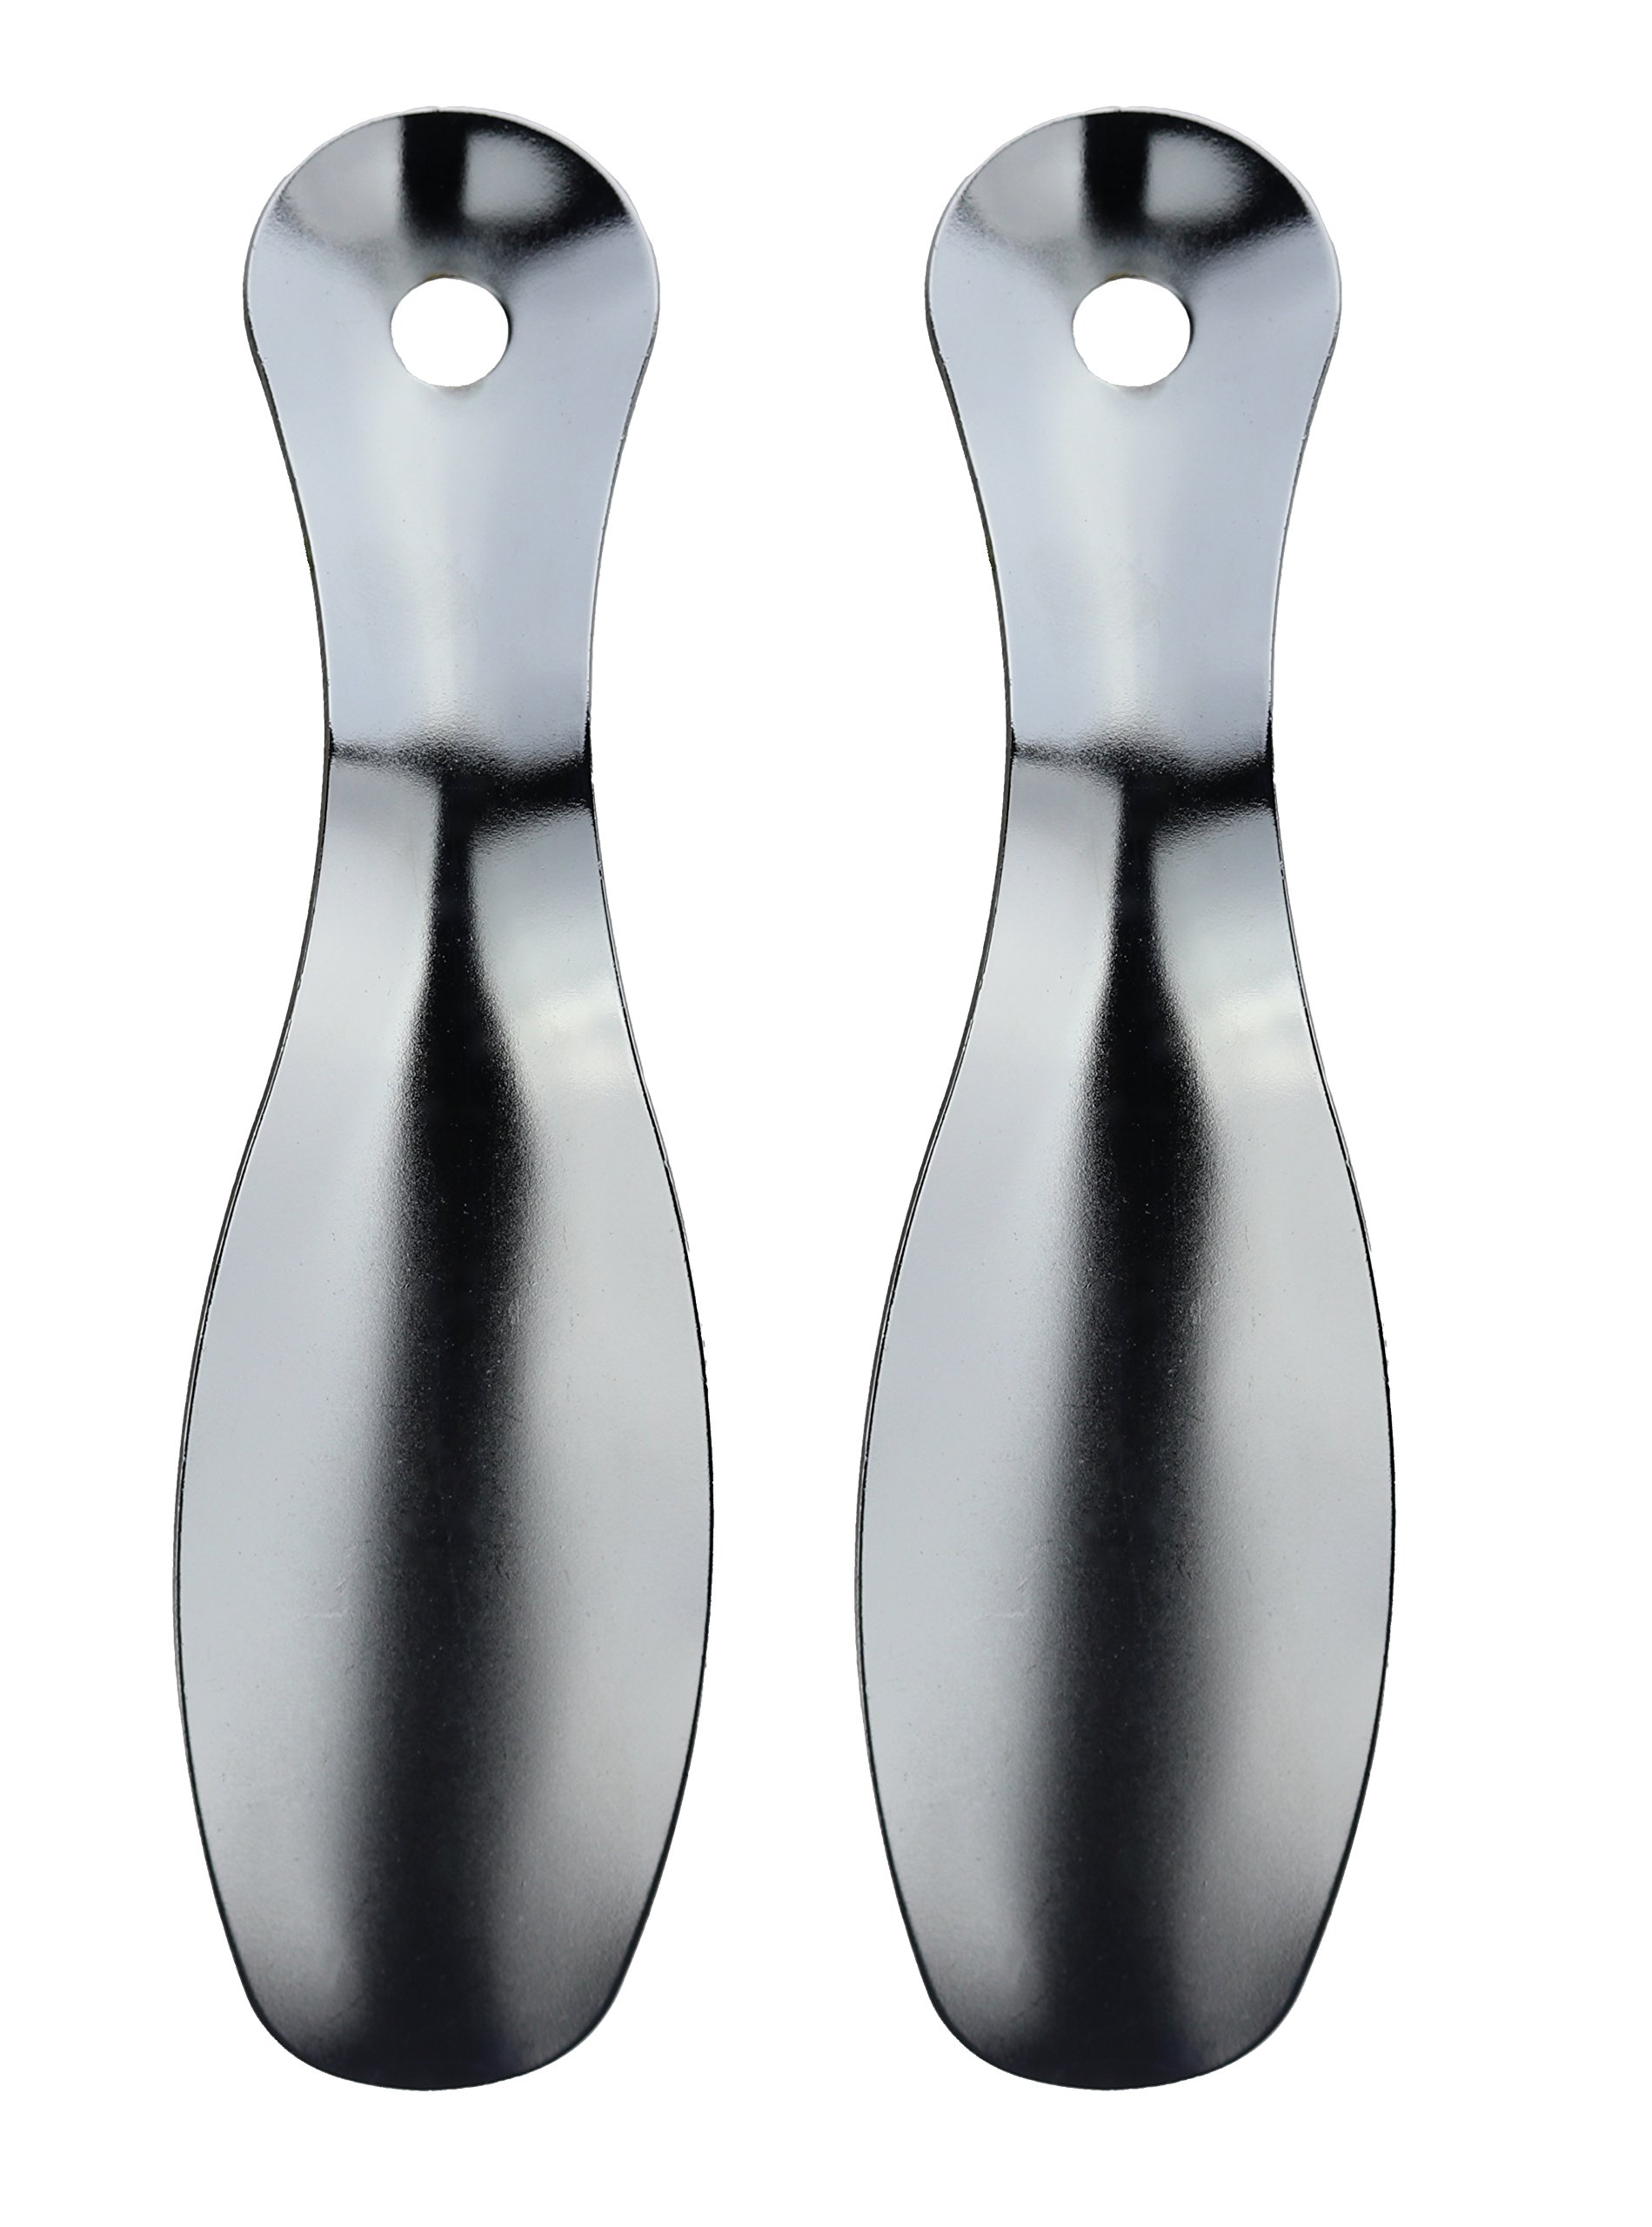 7.5 Inch Metal shoehorn. Travel Shoe horn. Unisex Shoehorn. (Two Shoehorn)